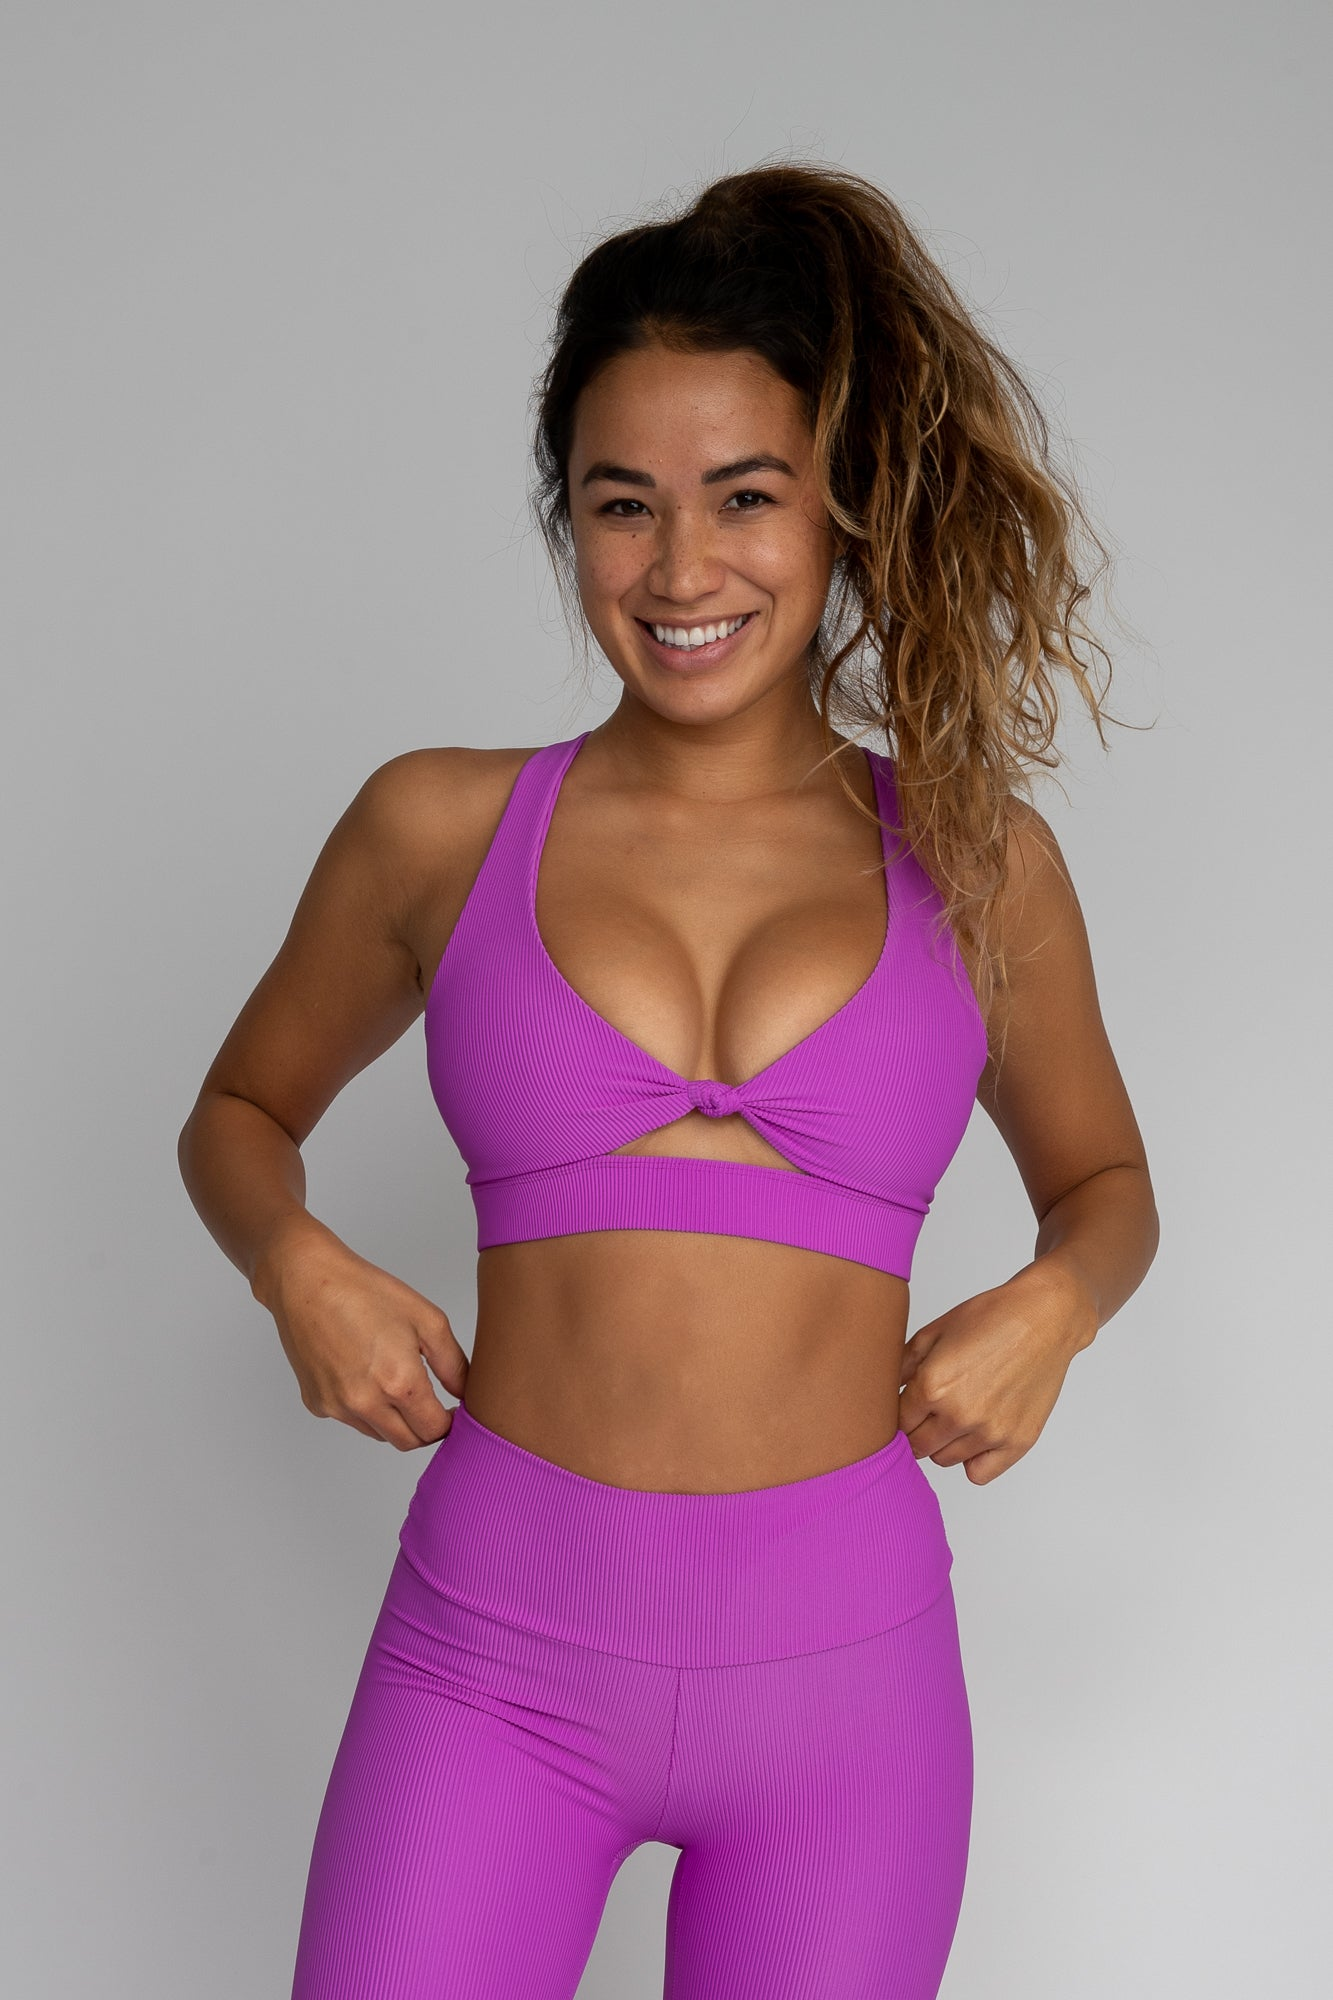 Georgie Sports Bra - Neon Purple